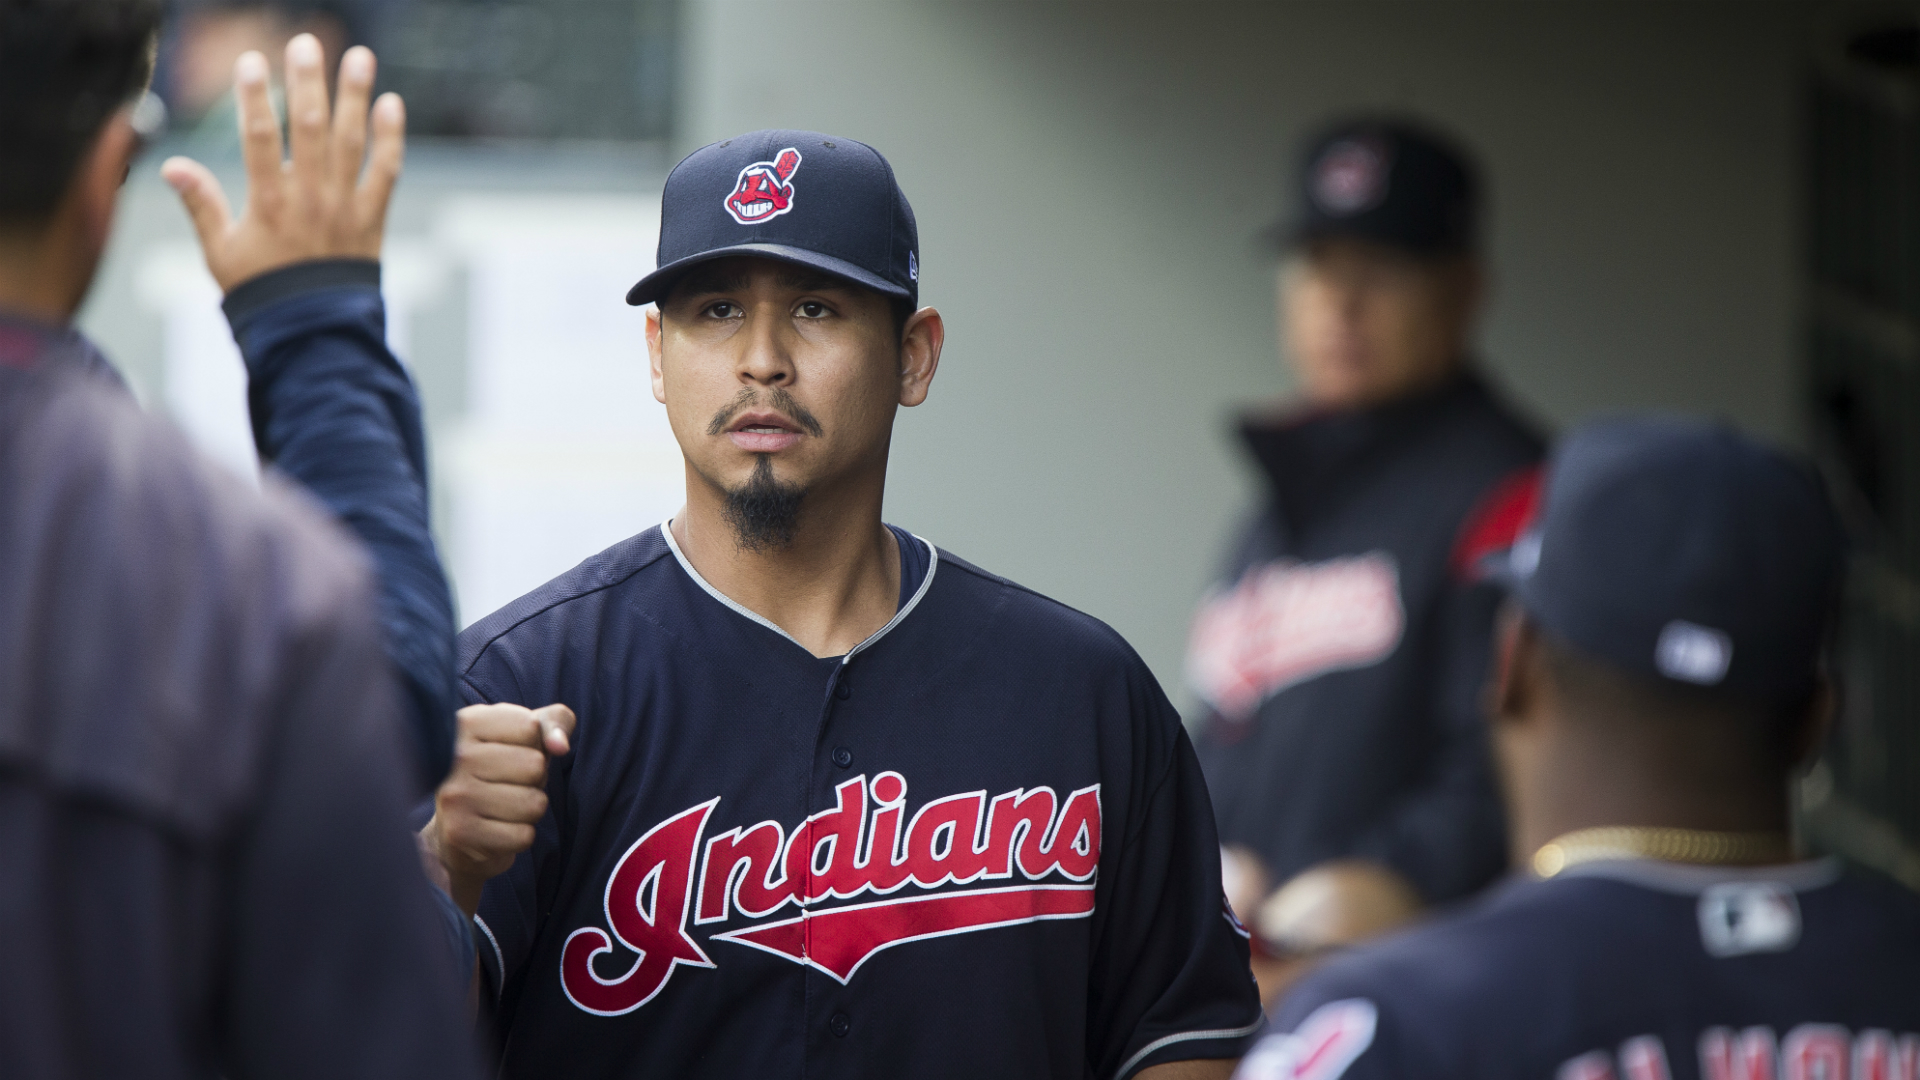 """Carrasco said: """"I spent two and a half months away from baseball, just coming back today out of the bullpen feels great."""""""